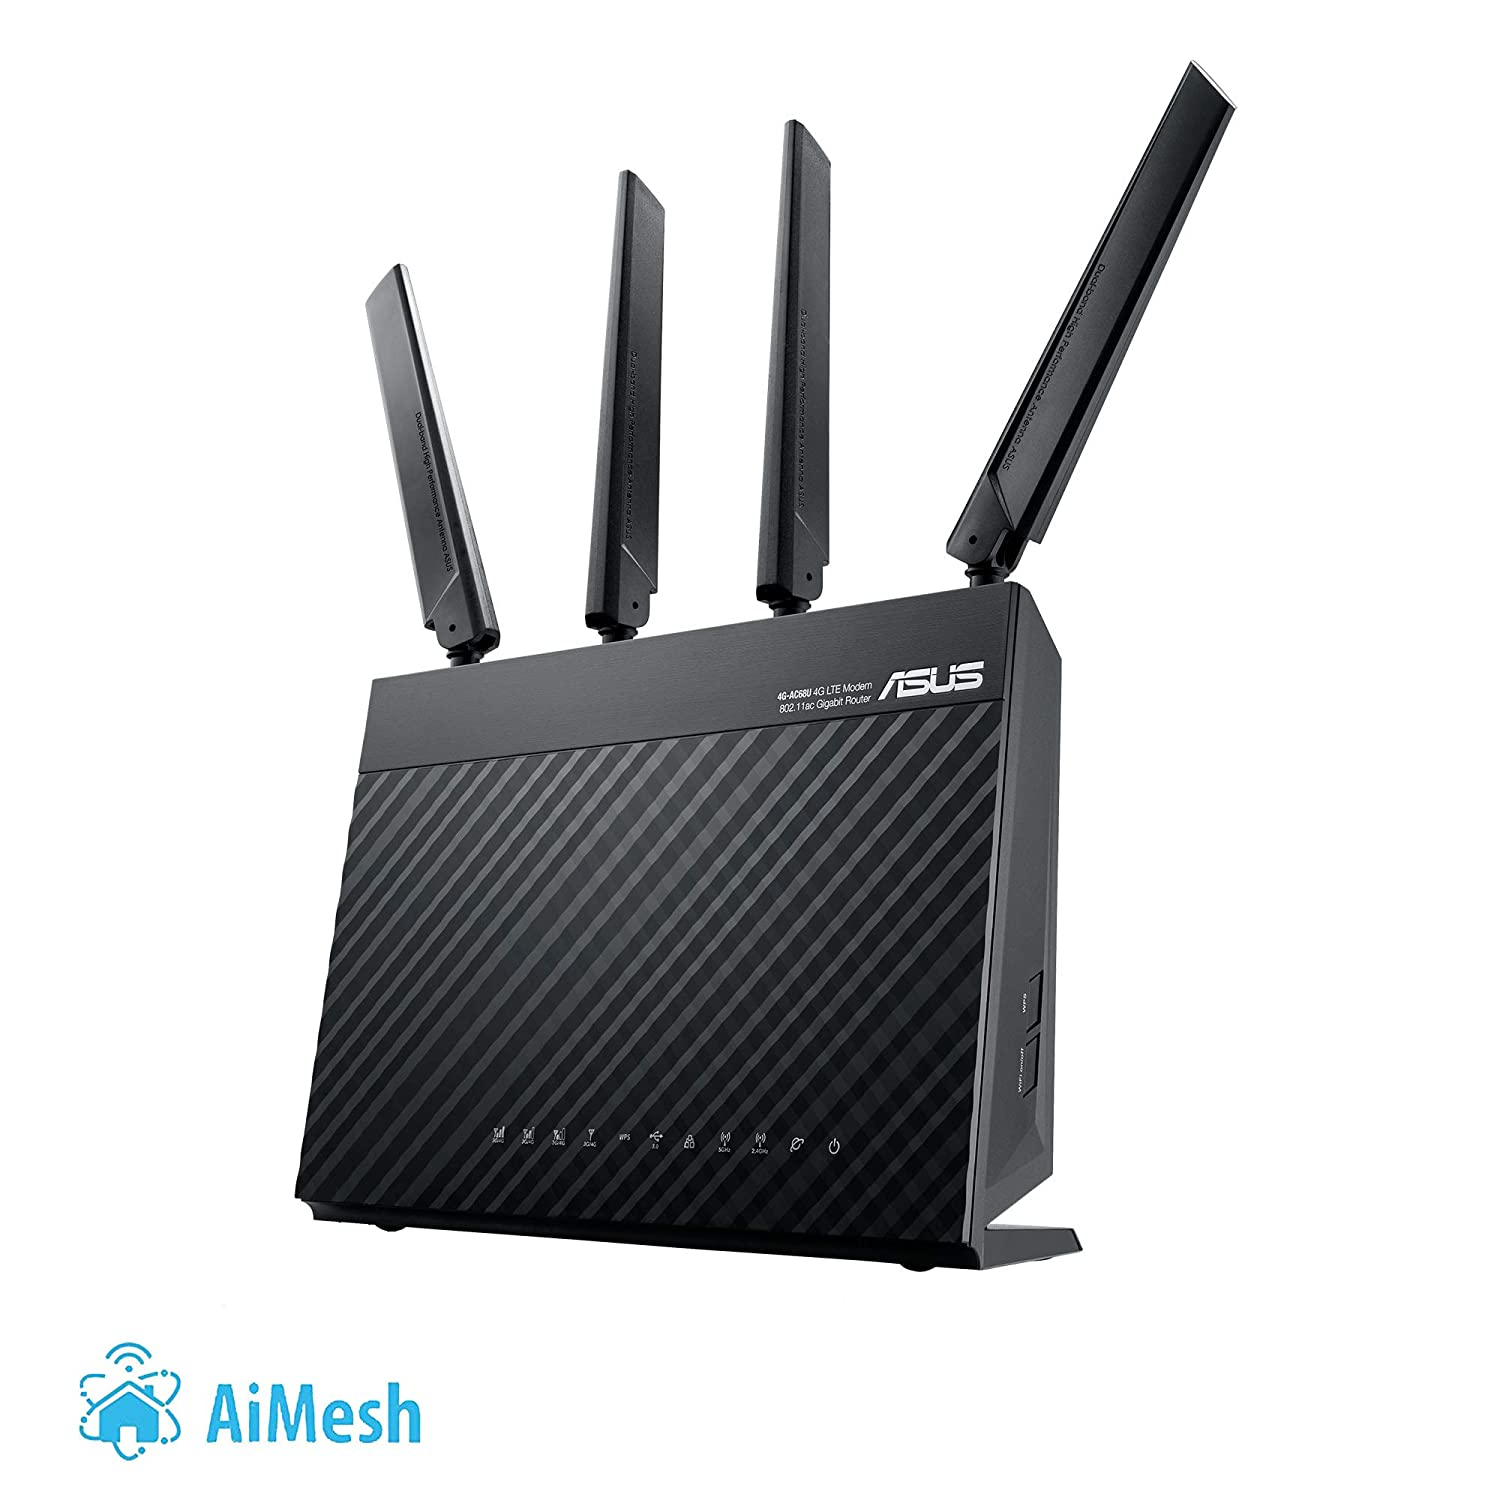 Asus 4g Ac68u Ac1900 Wifi Router With Modem Electronics Huawei B315 Lte 150mbps Home Wireless Hotspot